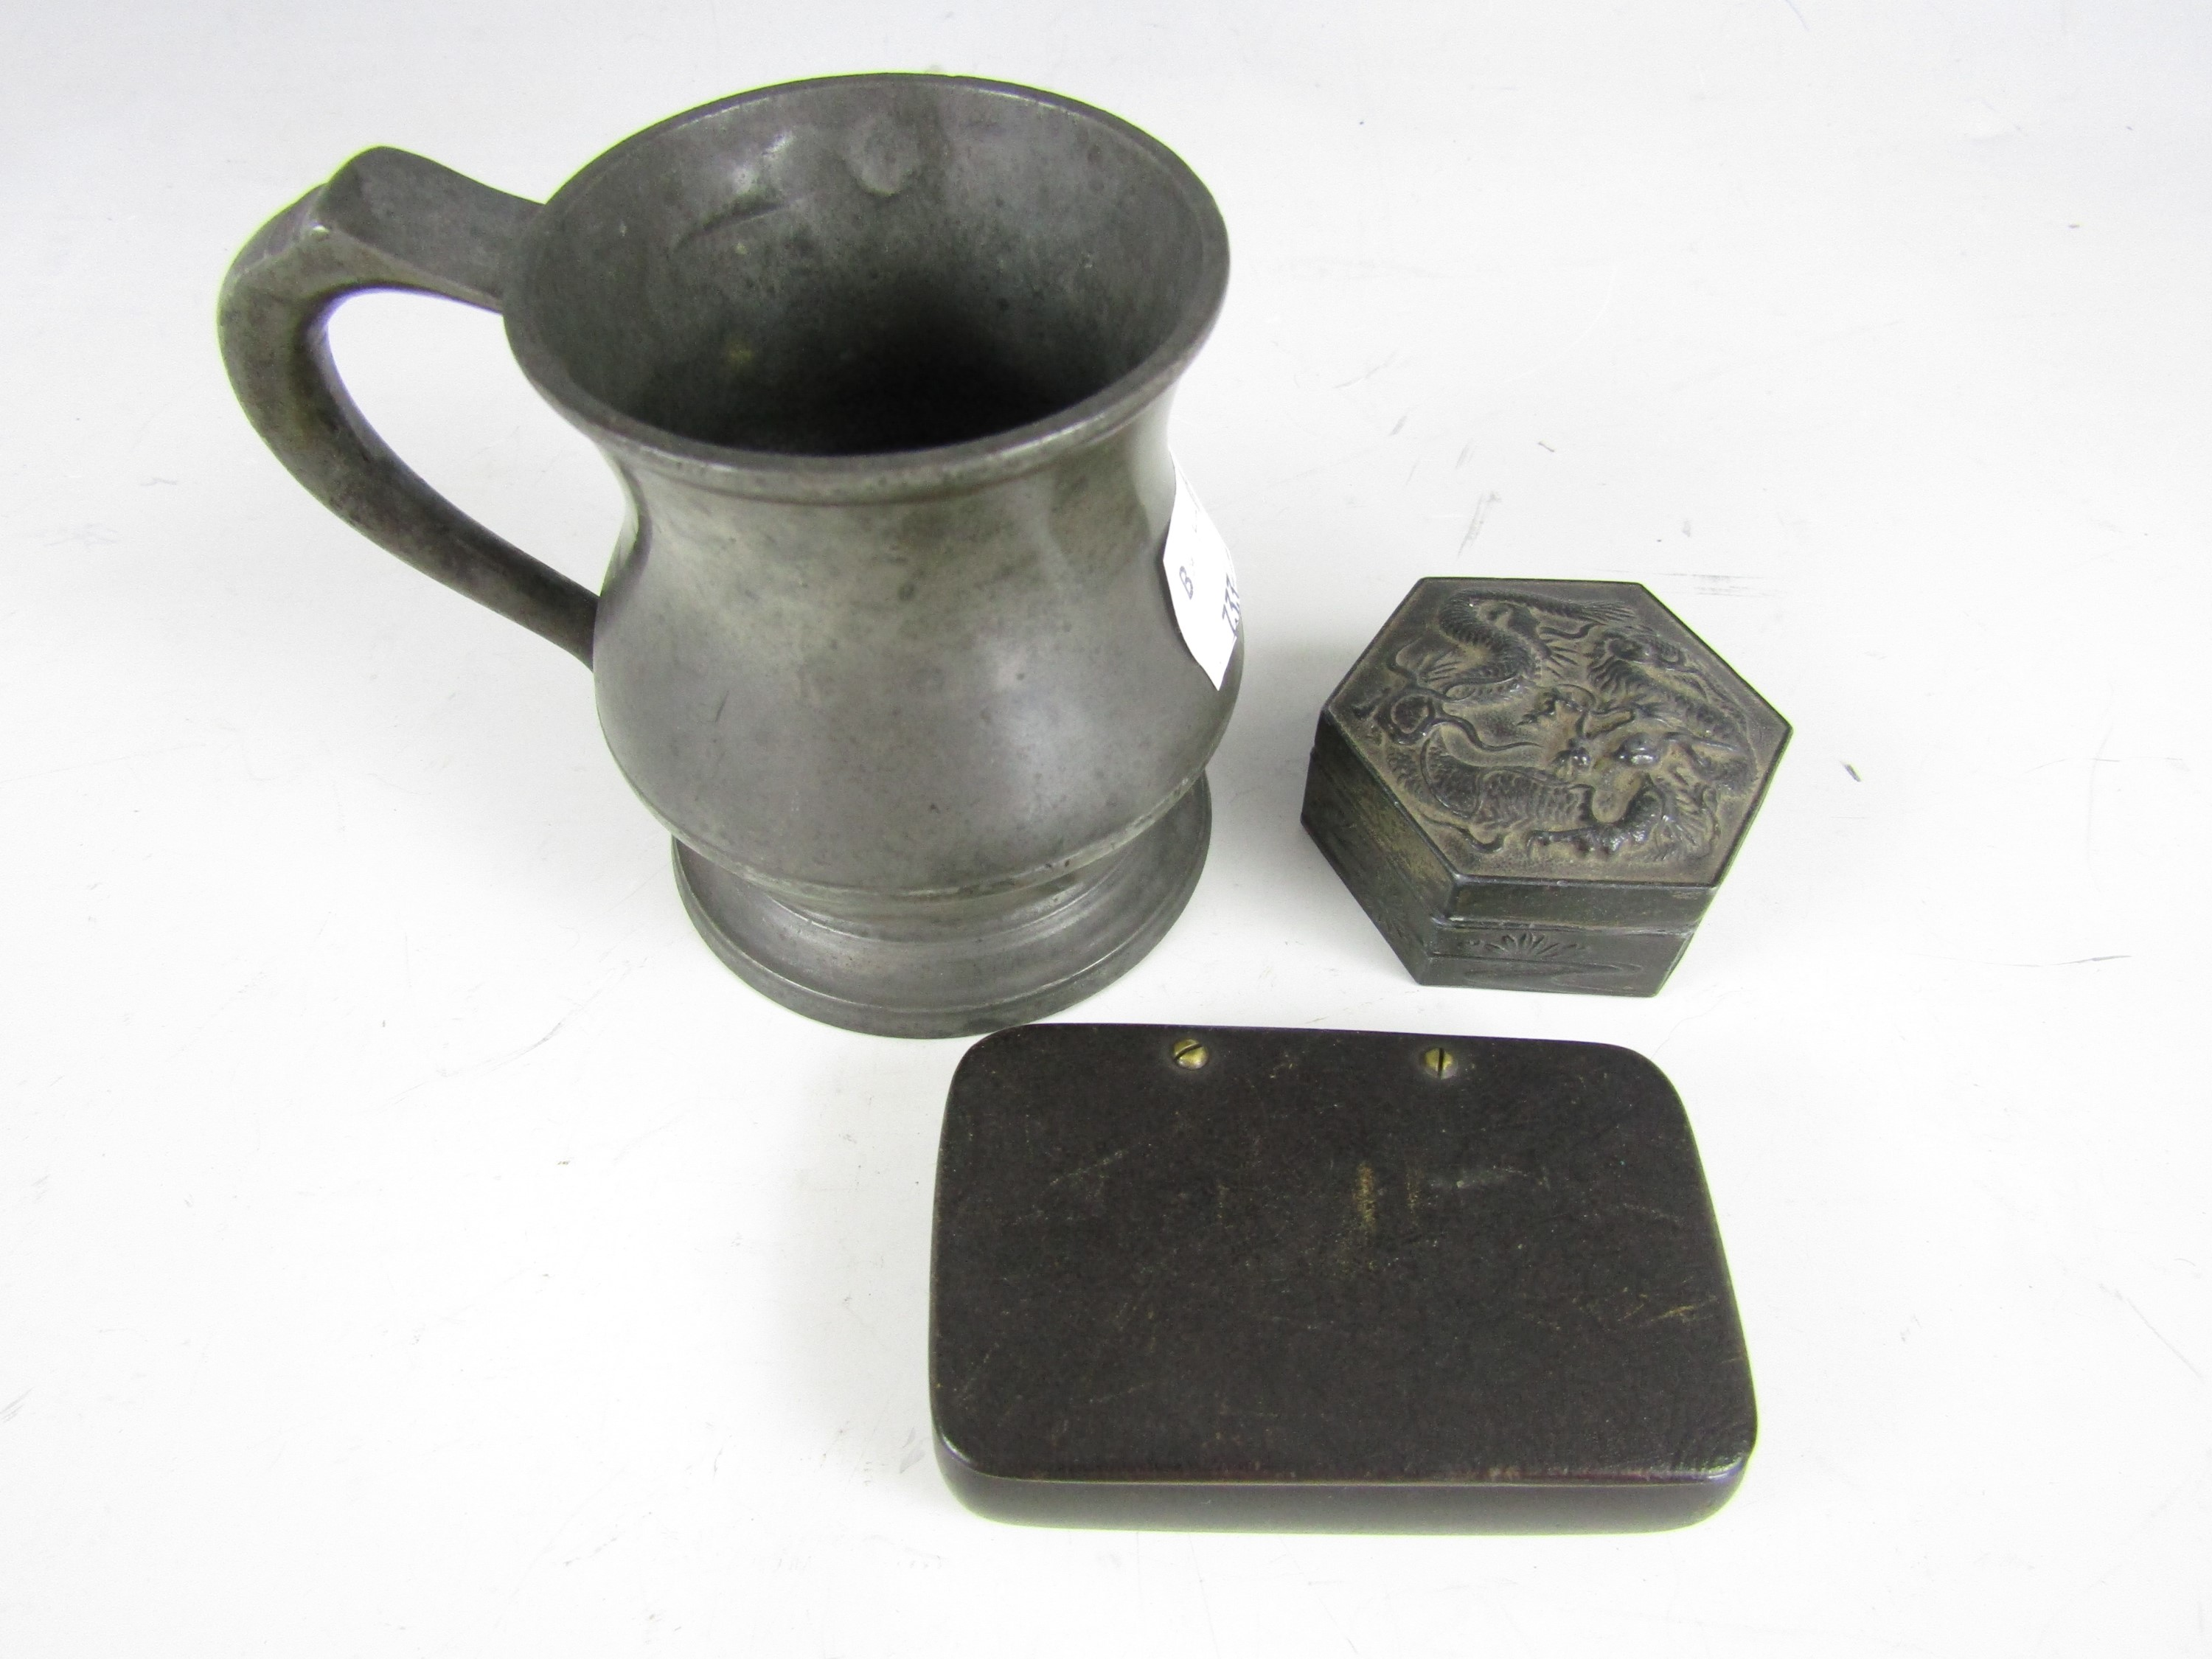 Lot 45 - A 19th Century snuff box together with a Japanese trinket box and a pewter gill measure of